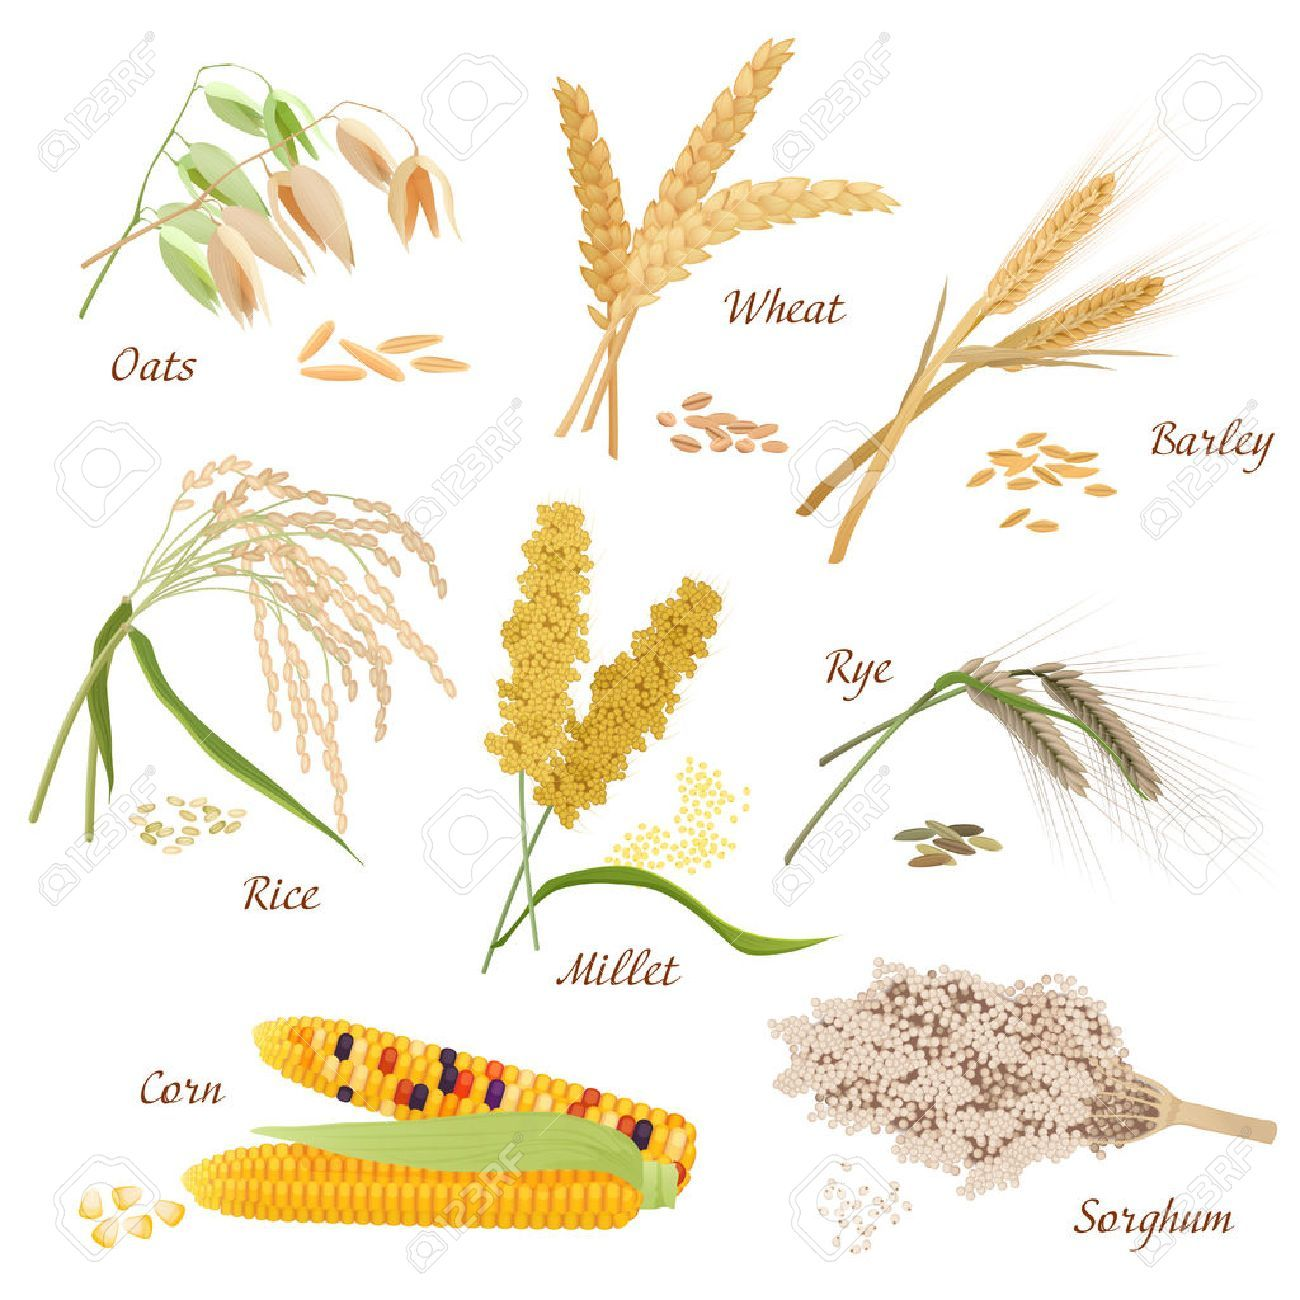 Wheat clipart millet plant. Stock vector sketches in